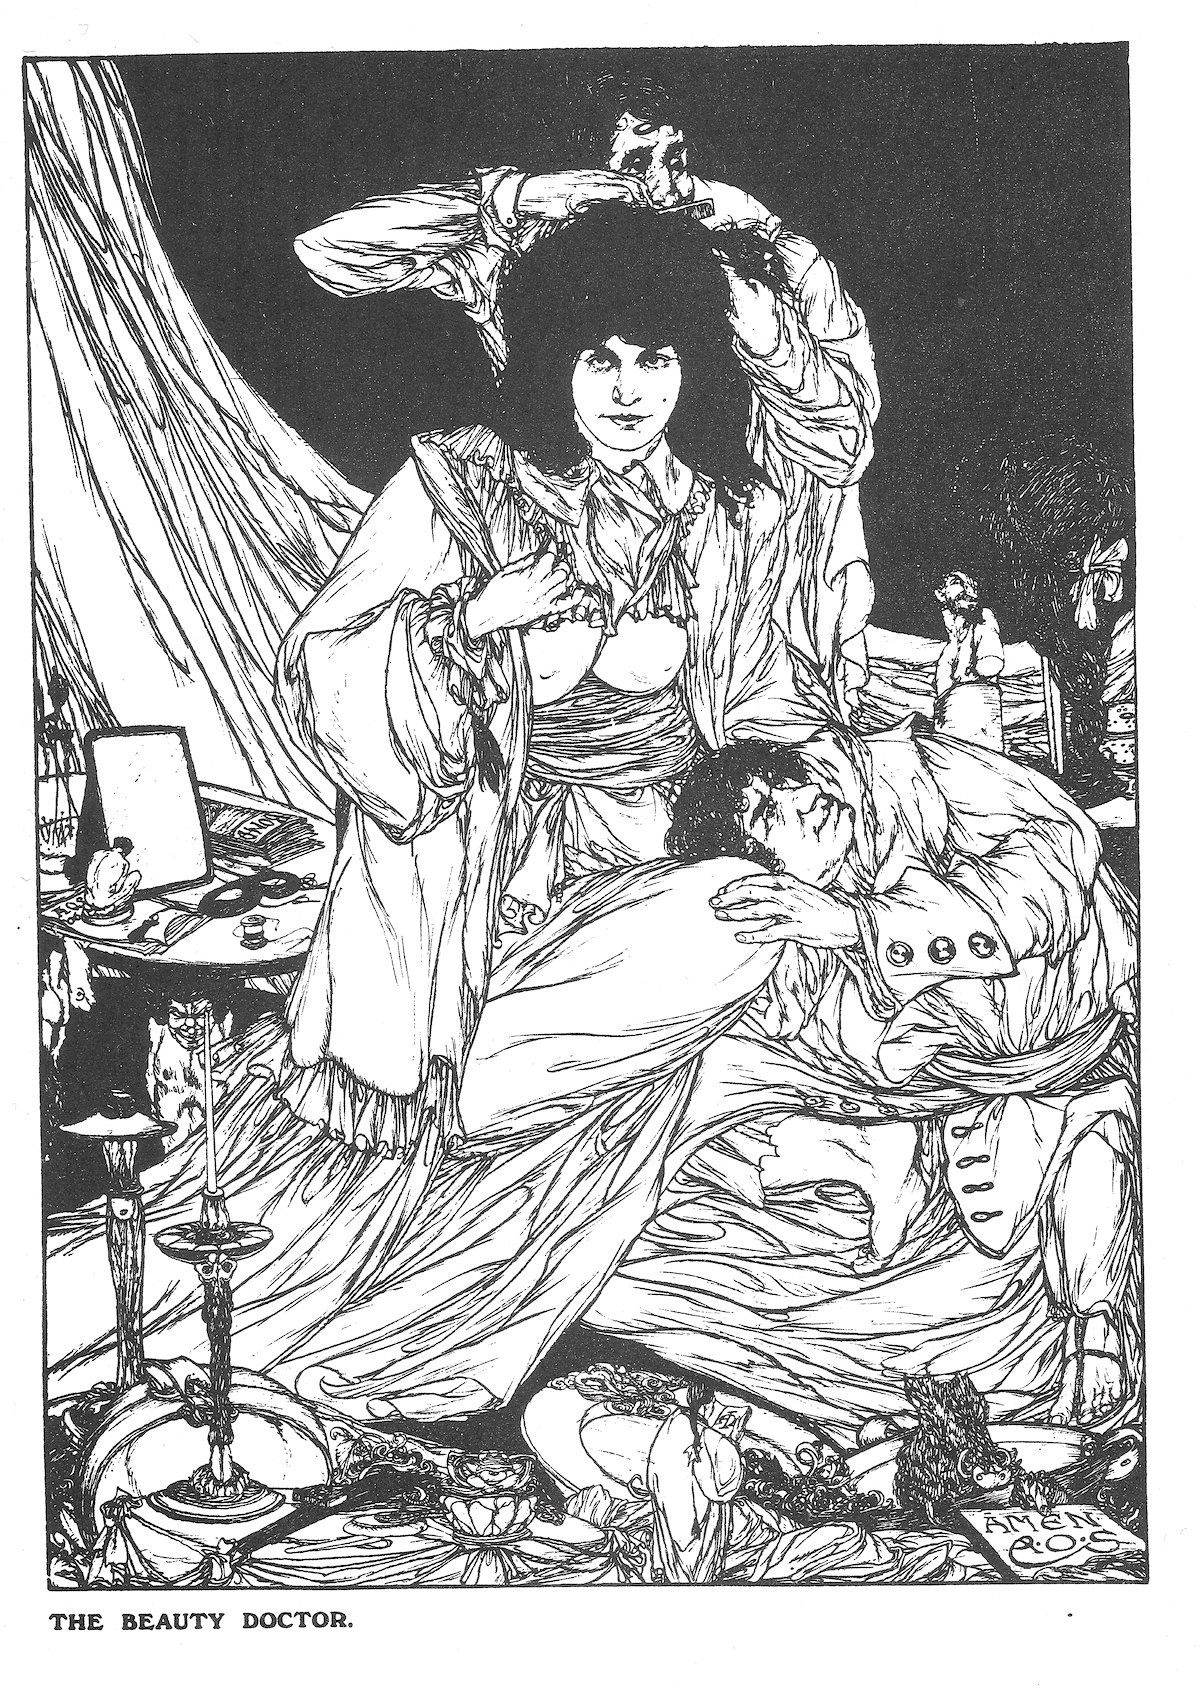 Austin Osman Spare, occult, illustration, Book of Satyrs